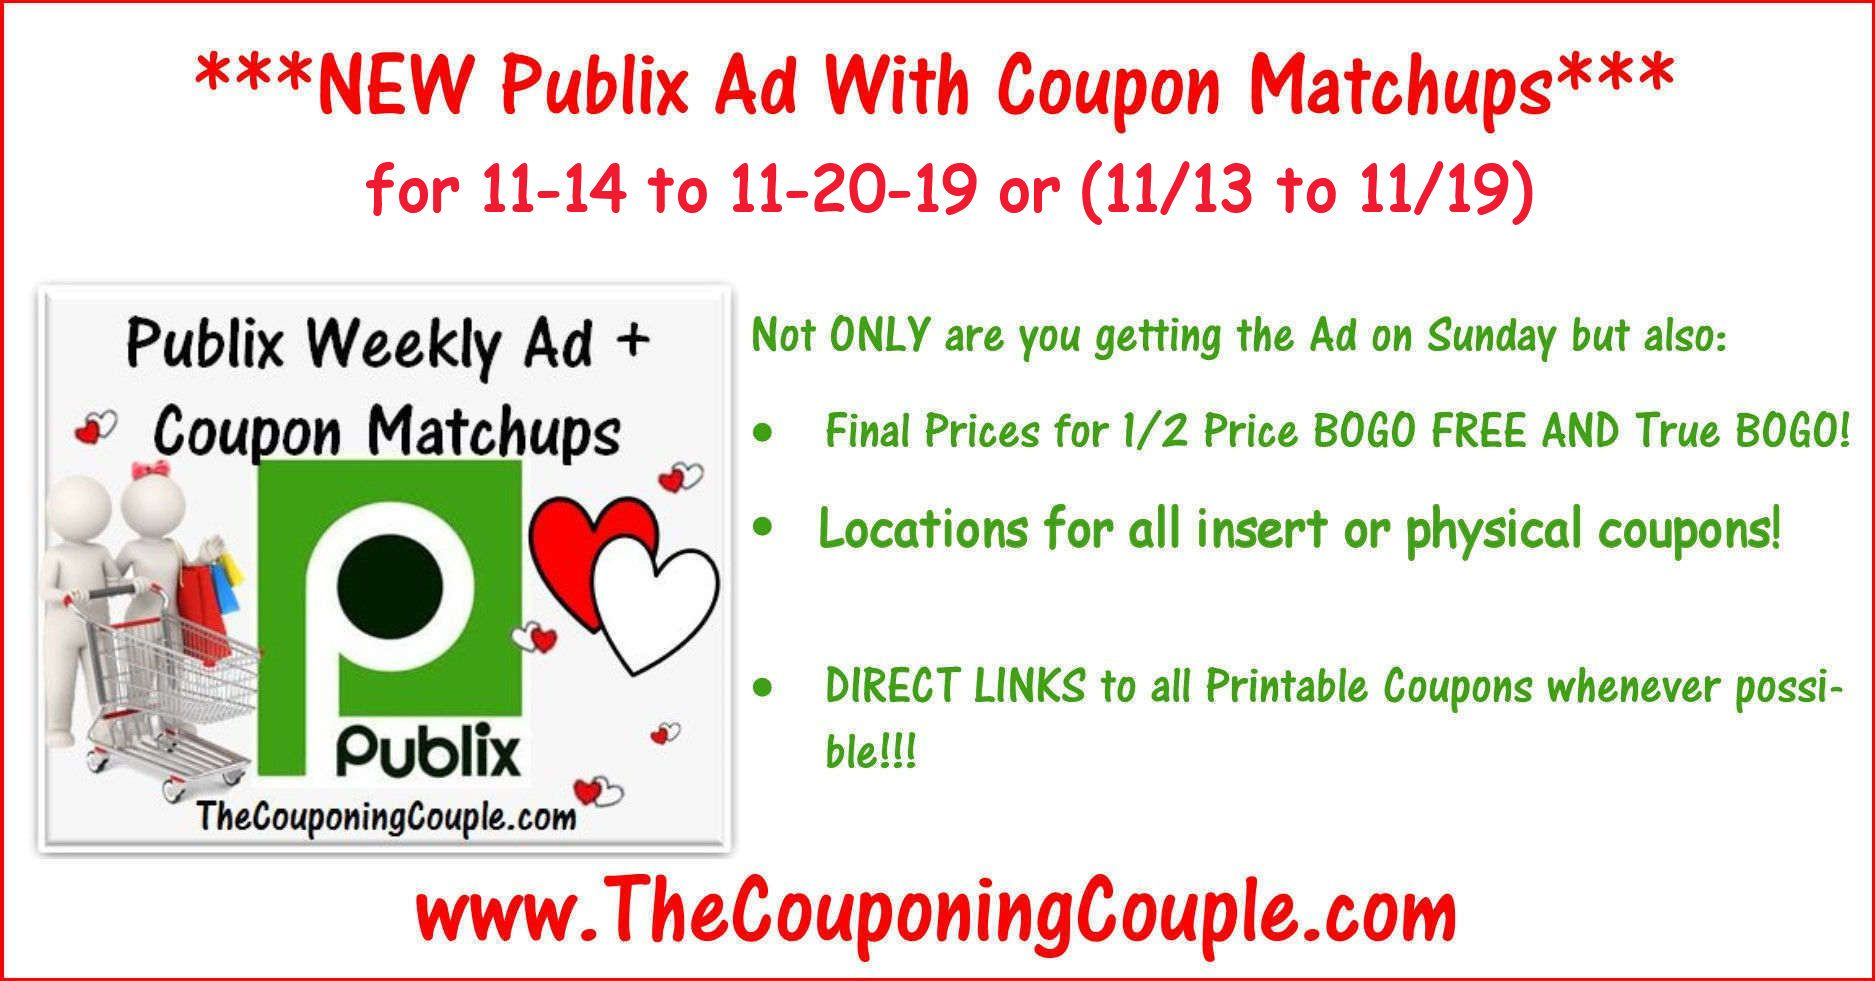 Publix Coupon Matchups For 11 14 To 11 20 19 Or 11 13 To 11 19 Coupon Matchups Publix Coupons Coupons